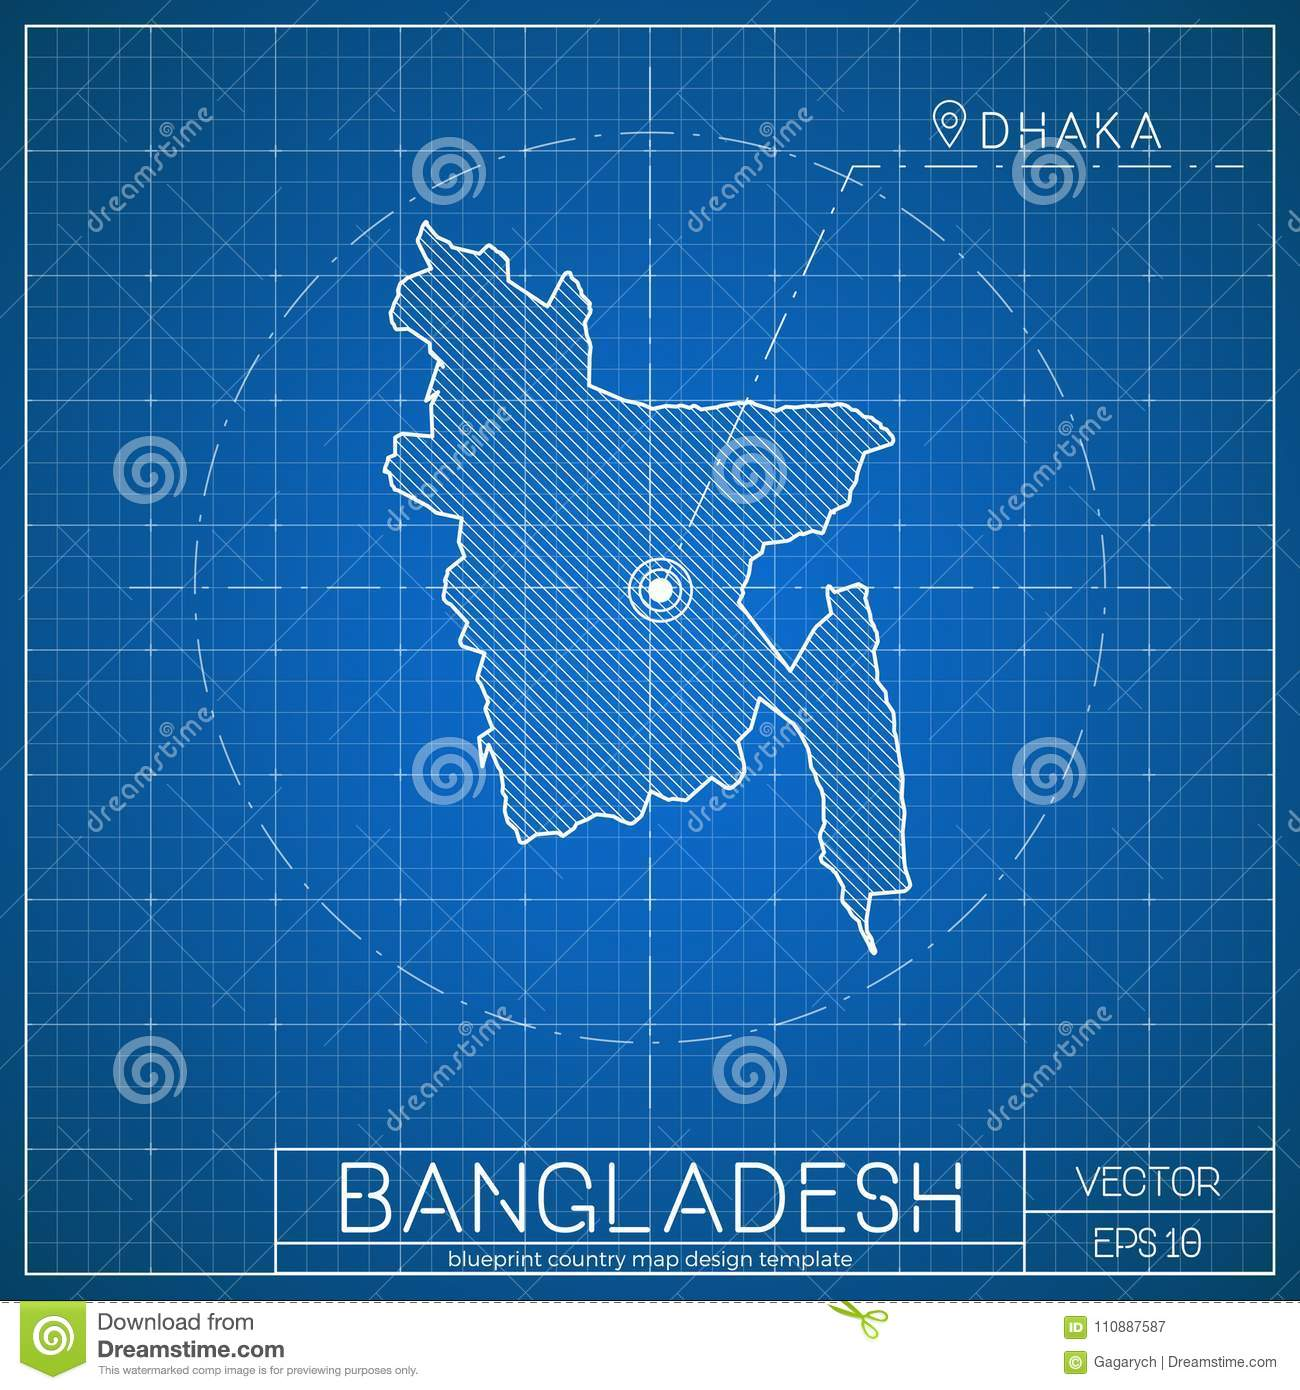 Bangladesh blueprint map template with capital stock vector download bangladesh blueprint map template with capital stock vector illustration of arrow architecture malvernweather Images